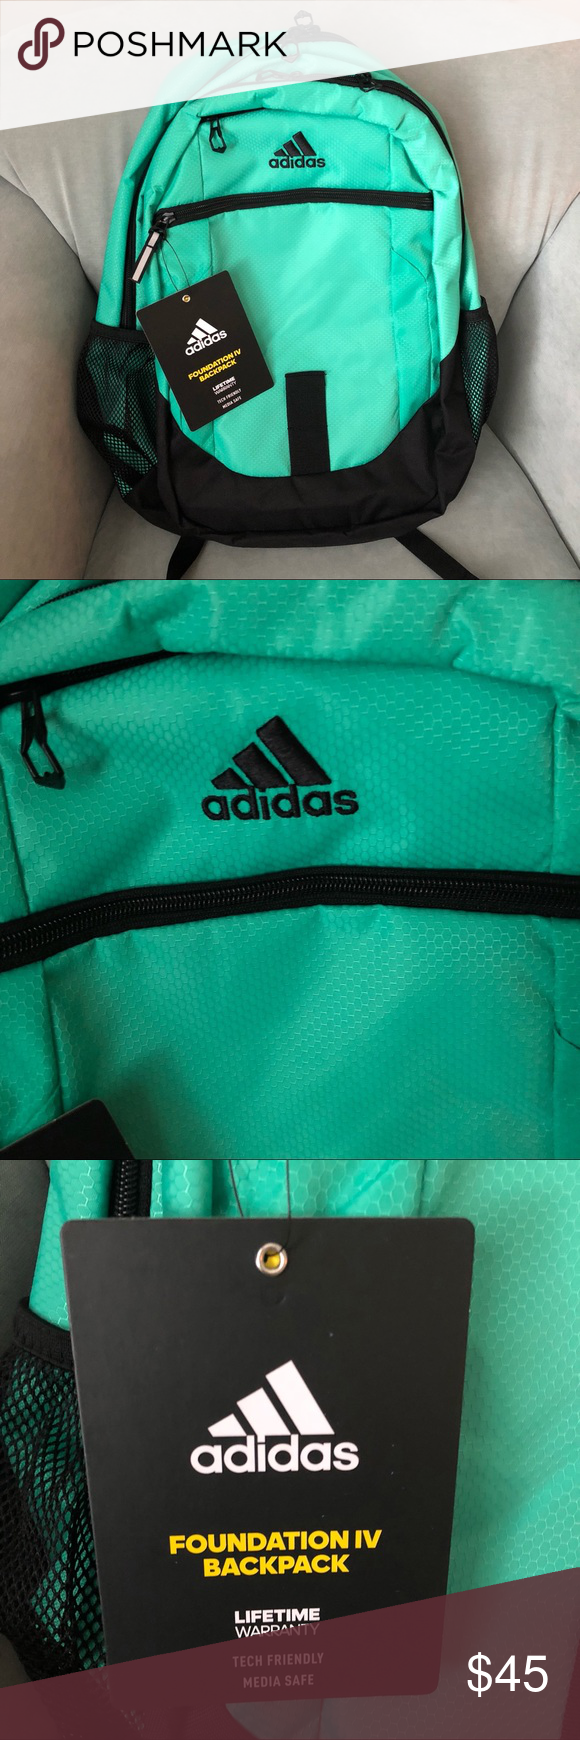 dbf980acb1 New Adidas Backpack New with tags attached Adidas Backpack in a beautiful  green color! There s